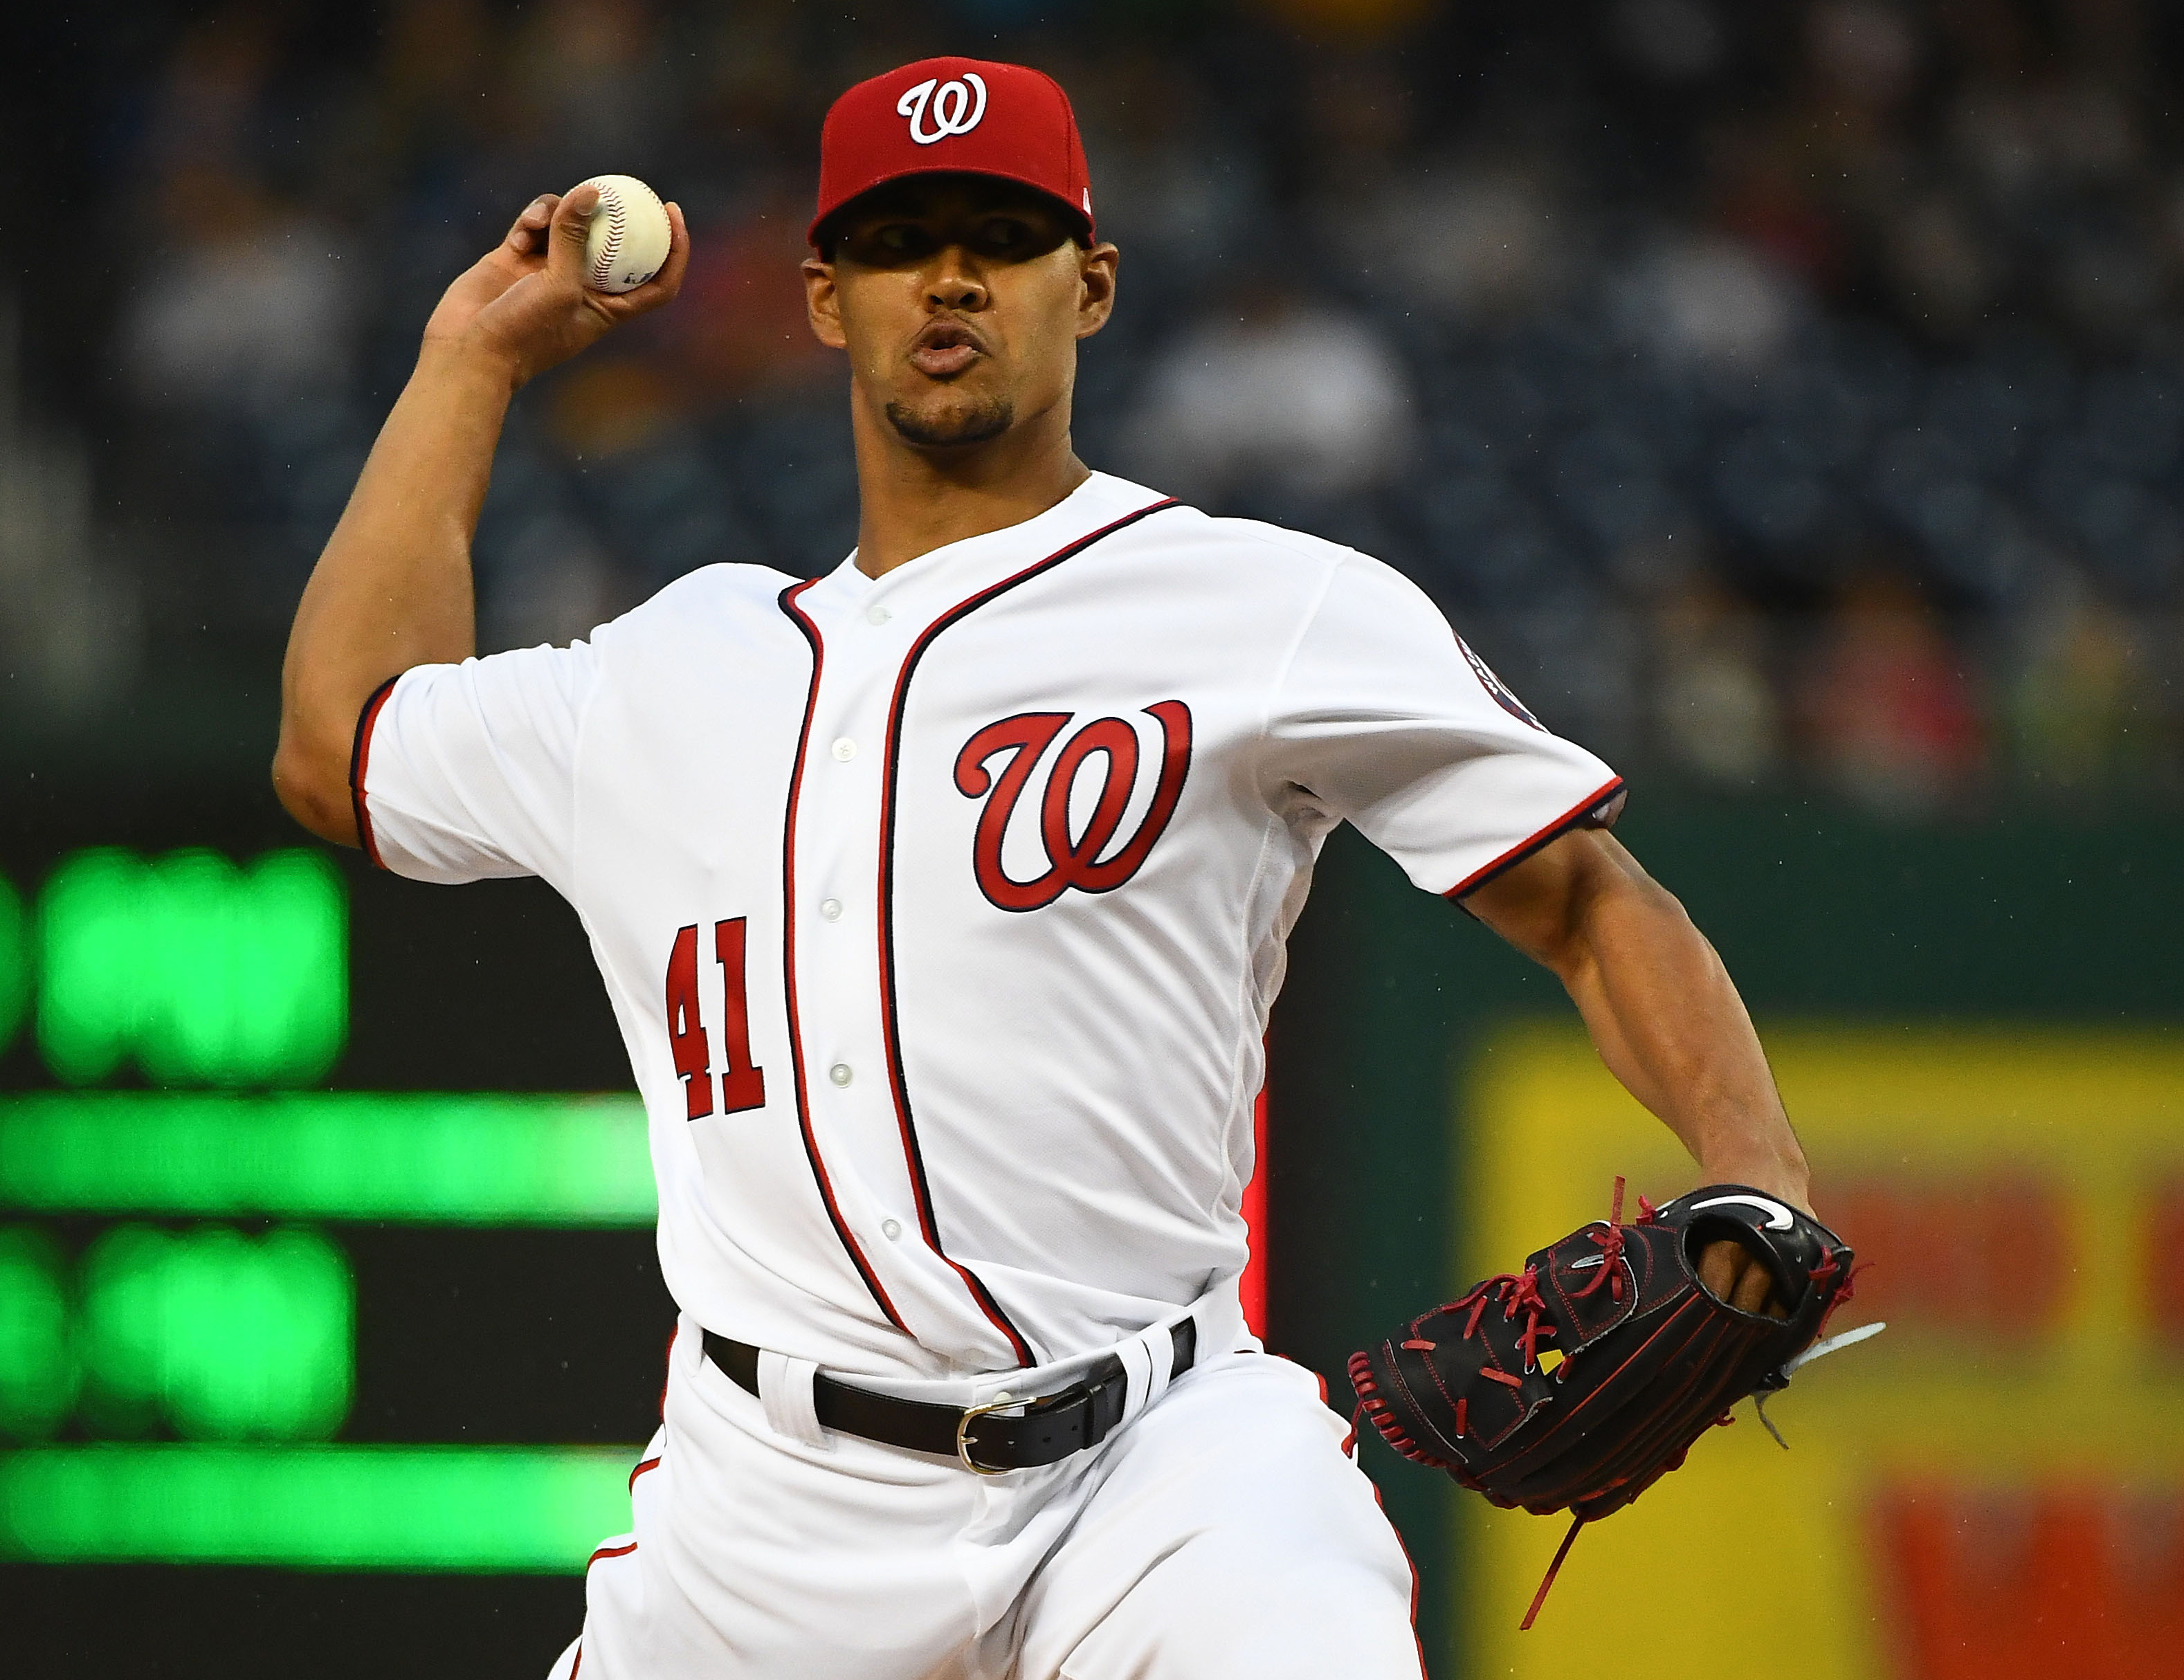 Fantasy Baseball 2017: Top 5 weekend waiver wire adds